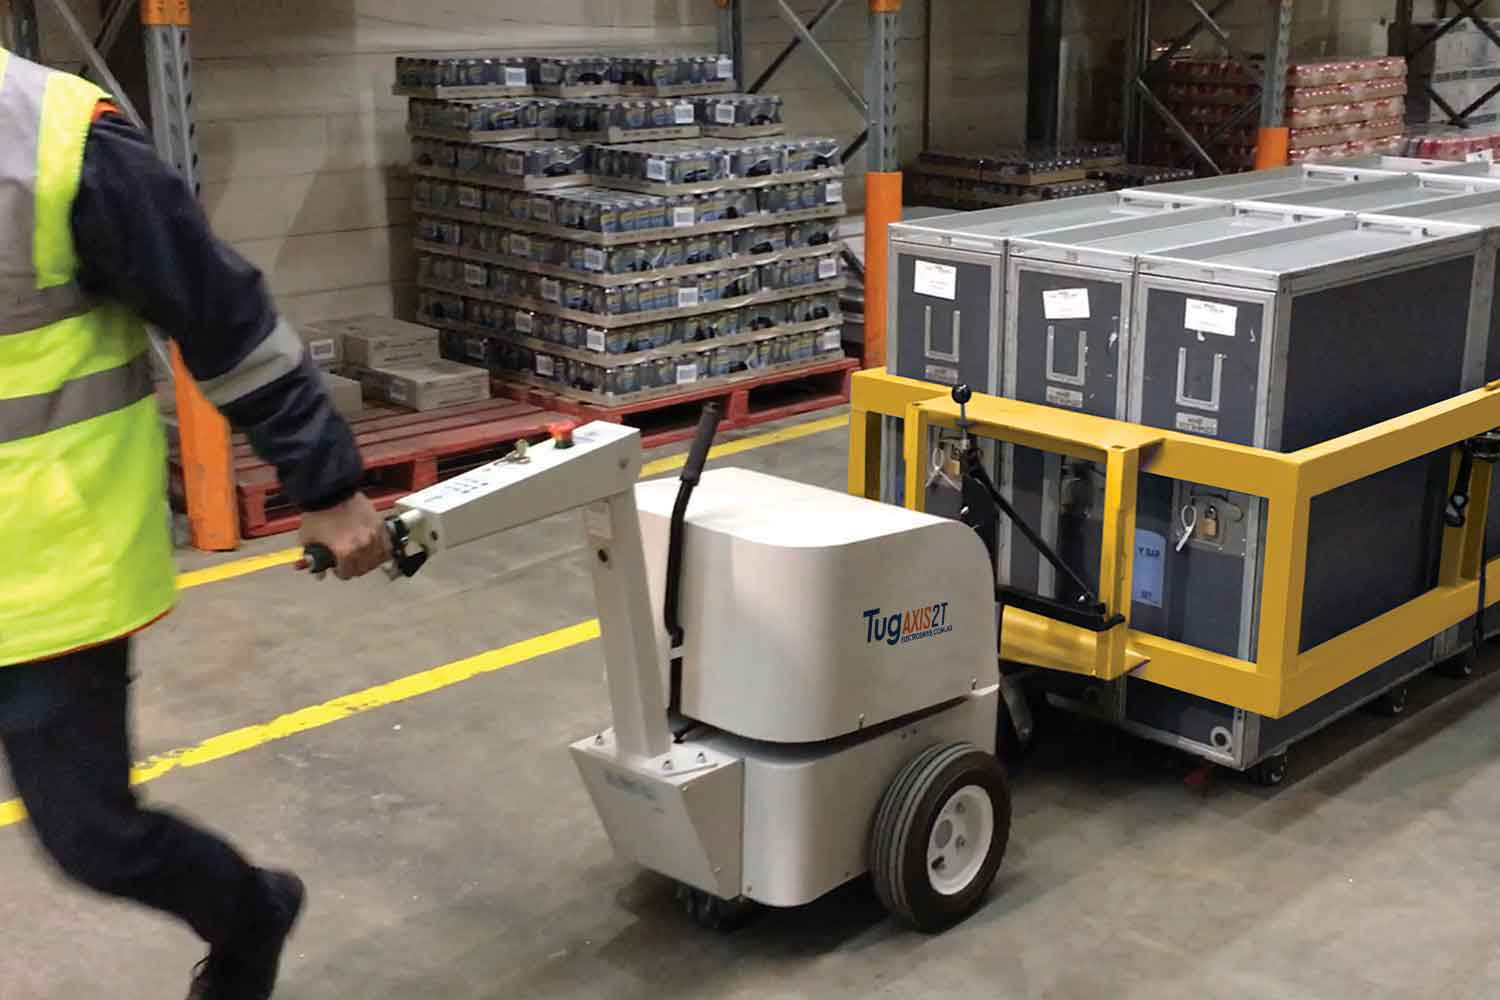 Electrodrive's Tug Axis moving an airline cart